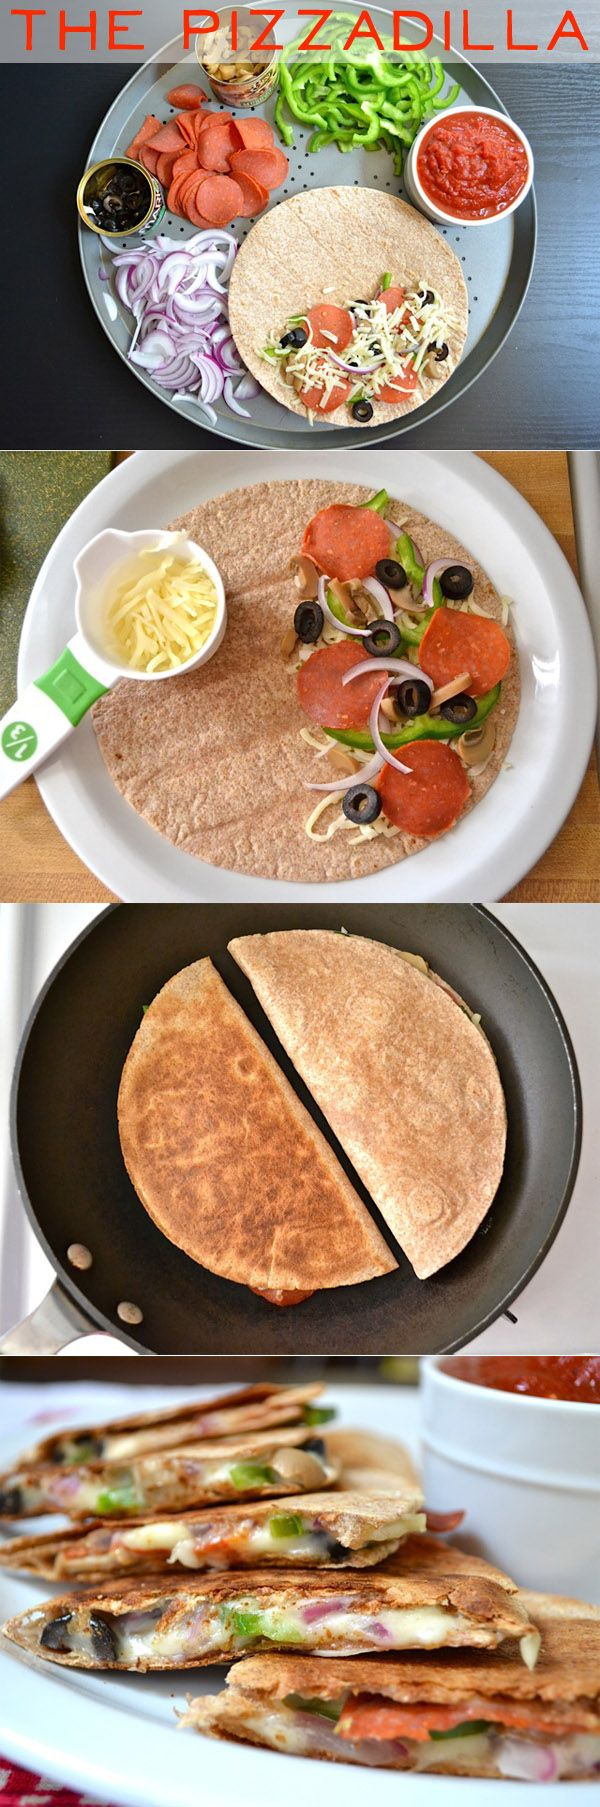 Pizzadillas - healthy pizza.